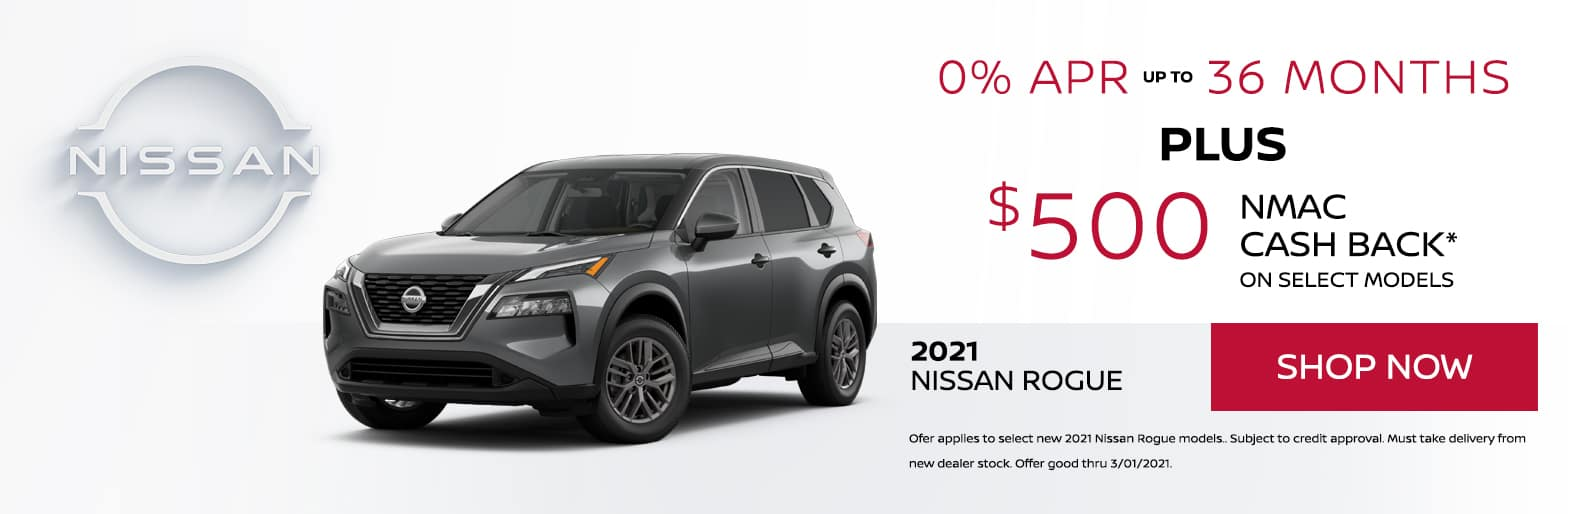 2021 Nissan Rogue 0% APR up to 36 months plus $500 NMAC Cash Back* on select models